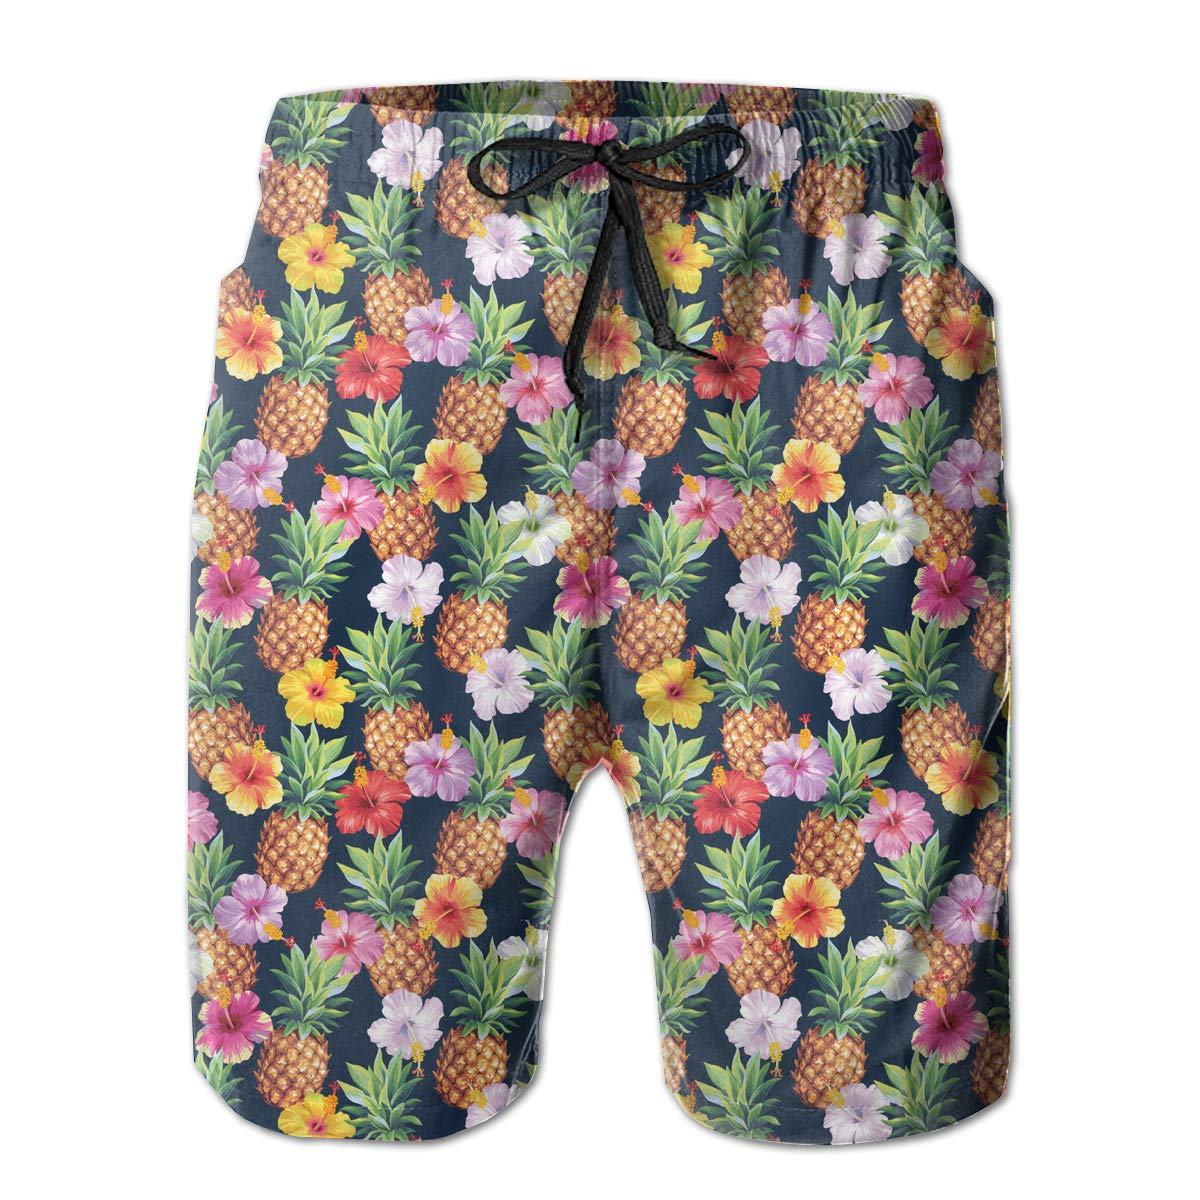 Xk7@KU Mens Quick Dry Beach Shorts Polyester Pineapples and Hibiscus Flowers Pattern Swimsuit with Pockets